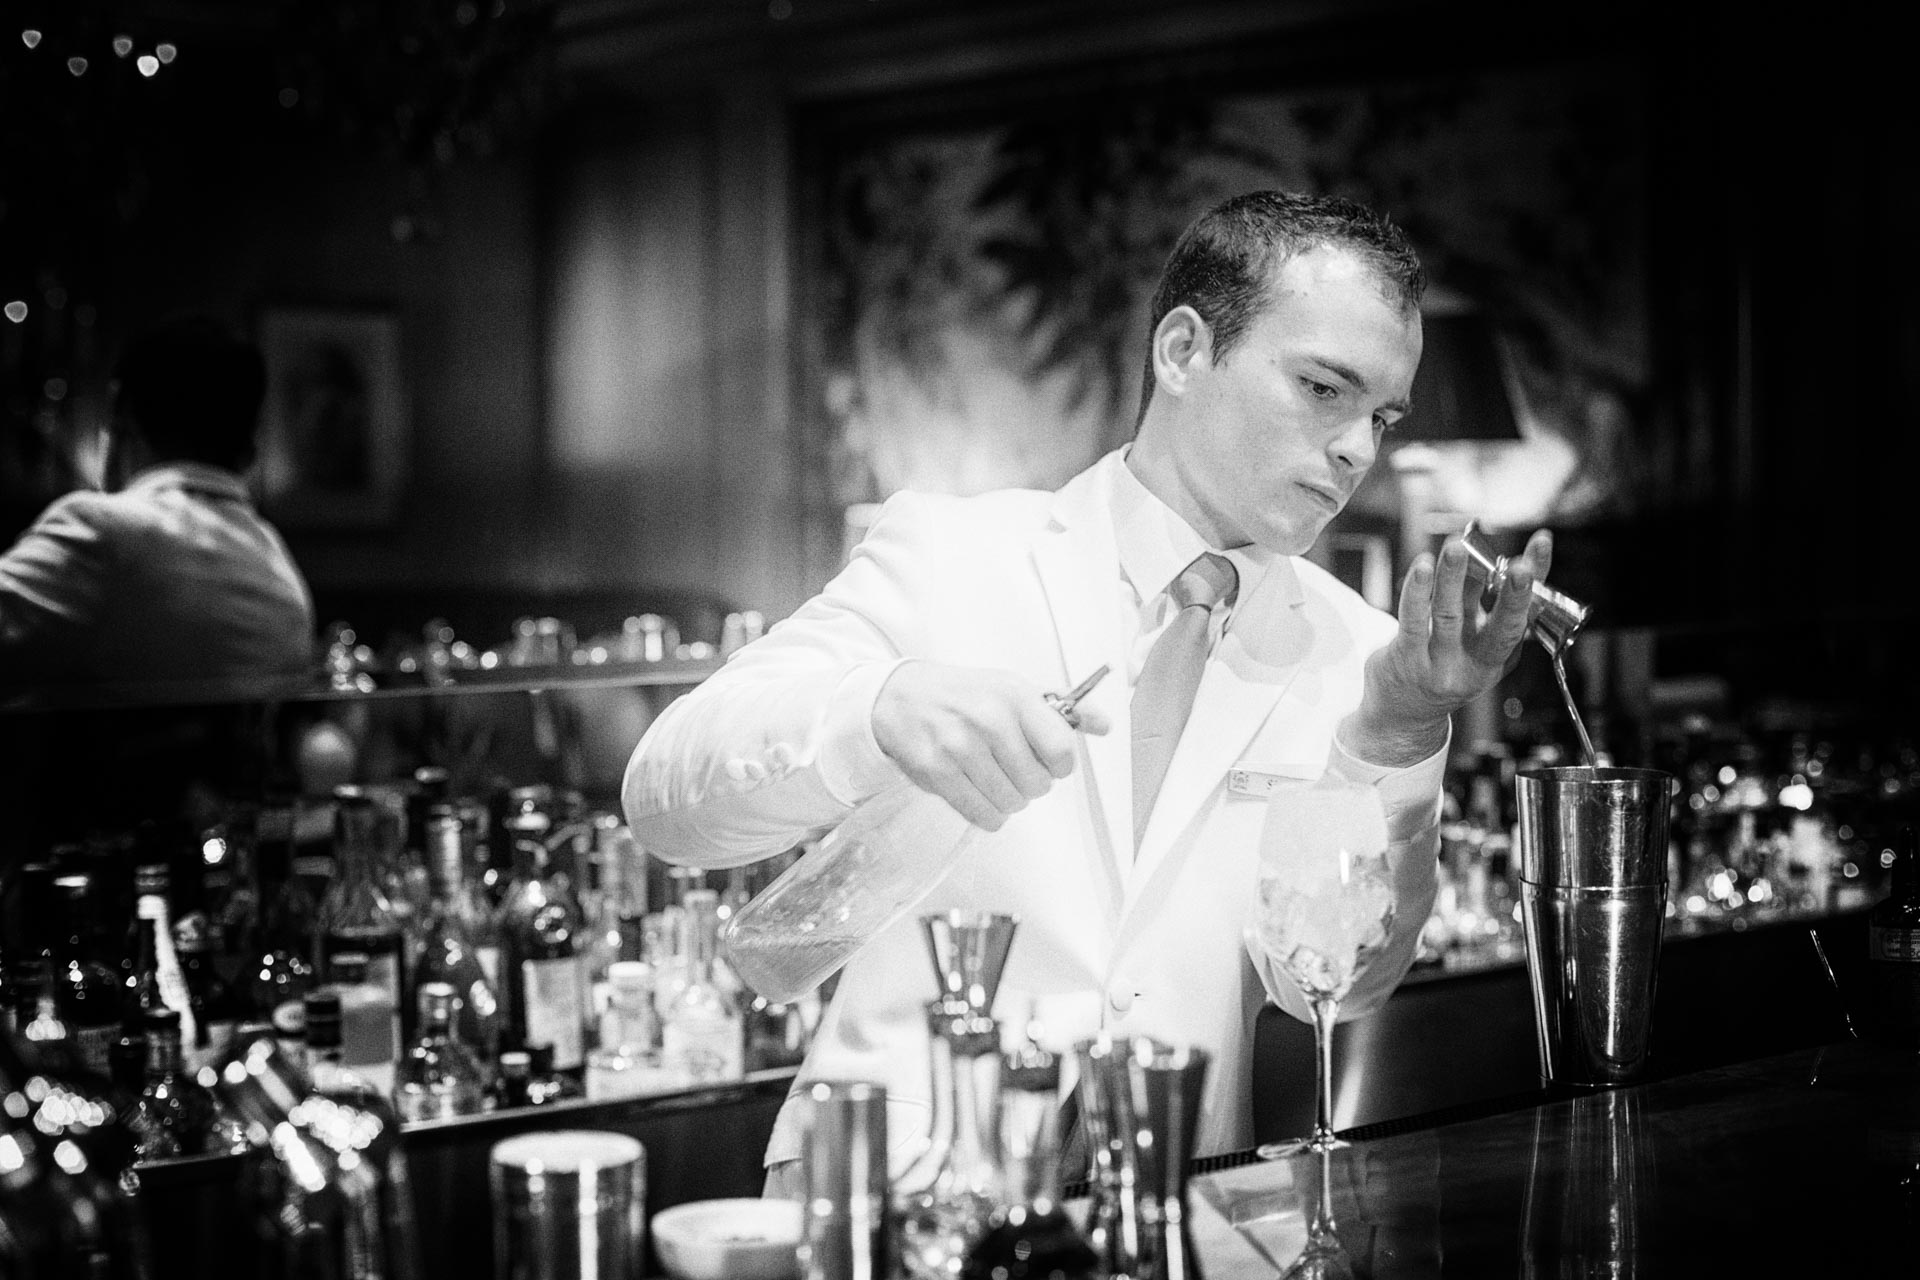 Bartender at Hotel Le Bristol Paris